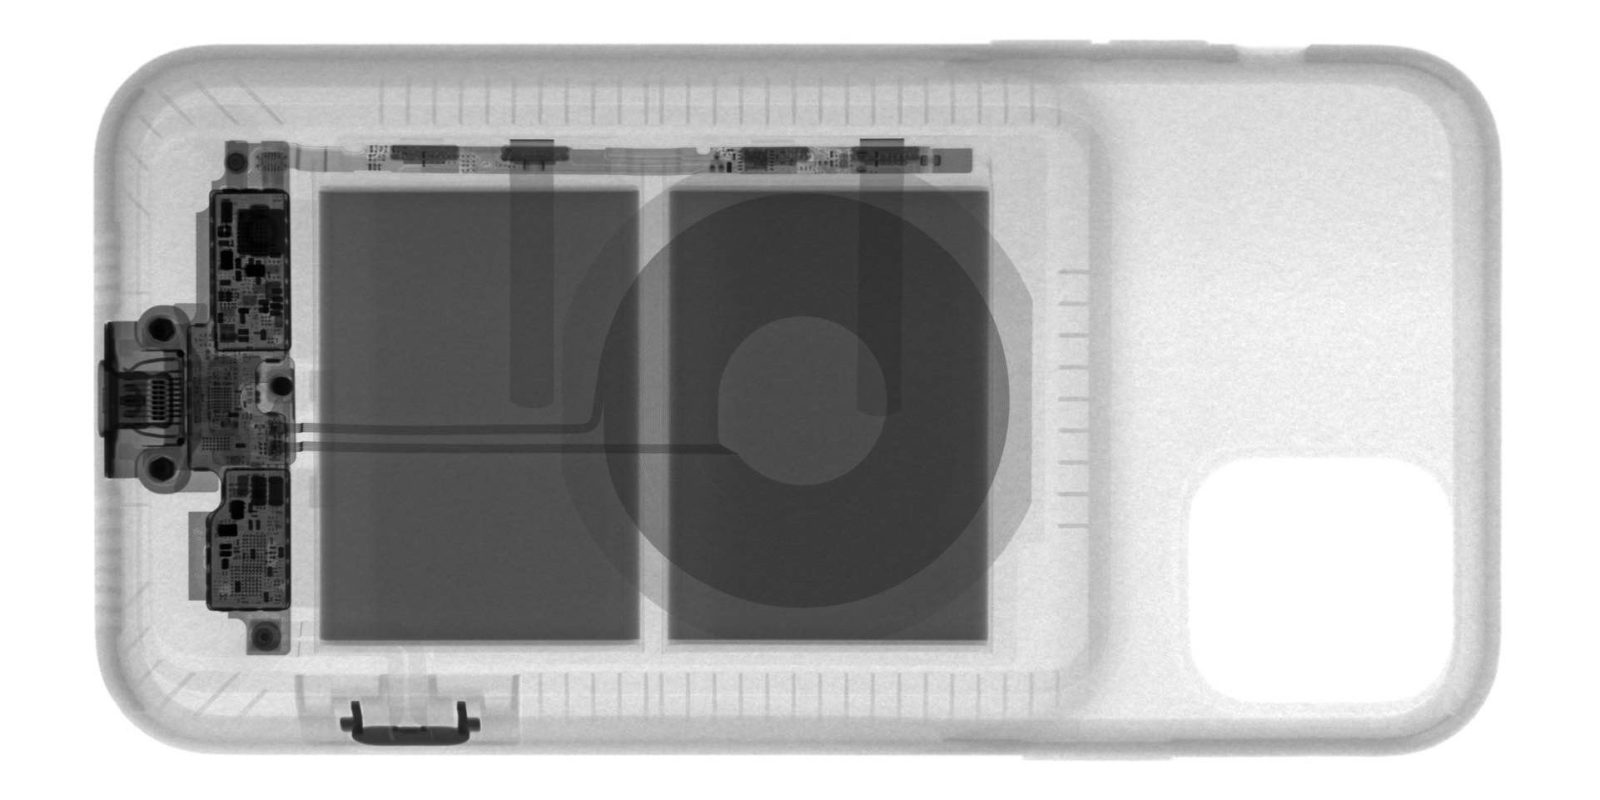 iFixit X-rays Apple's Smart Battery case to see how the camera button works